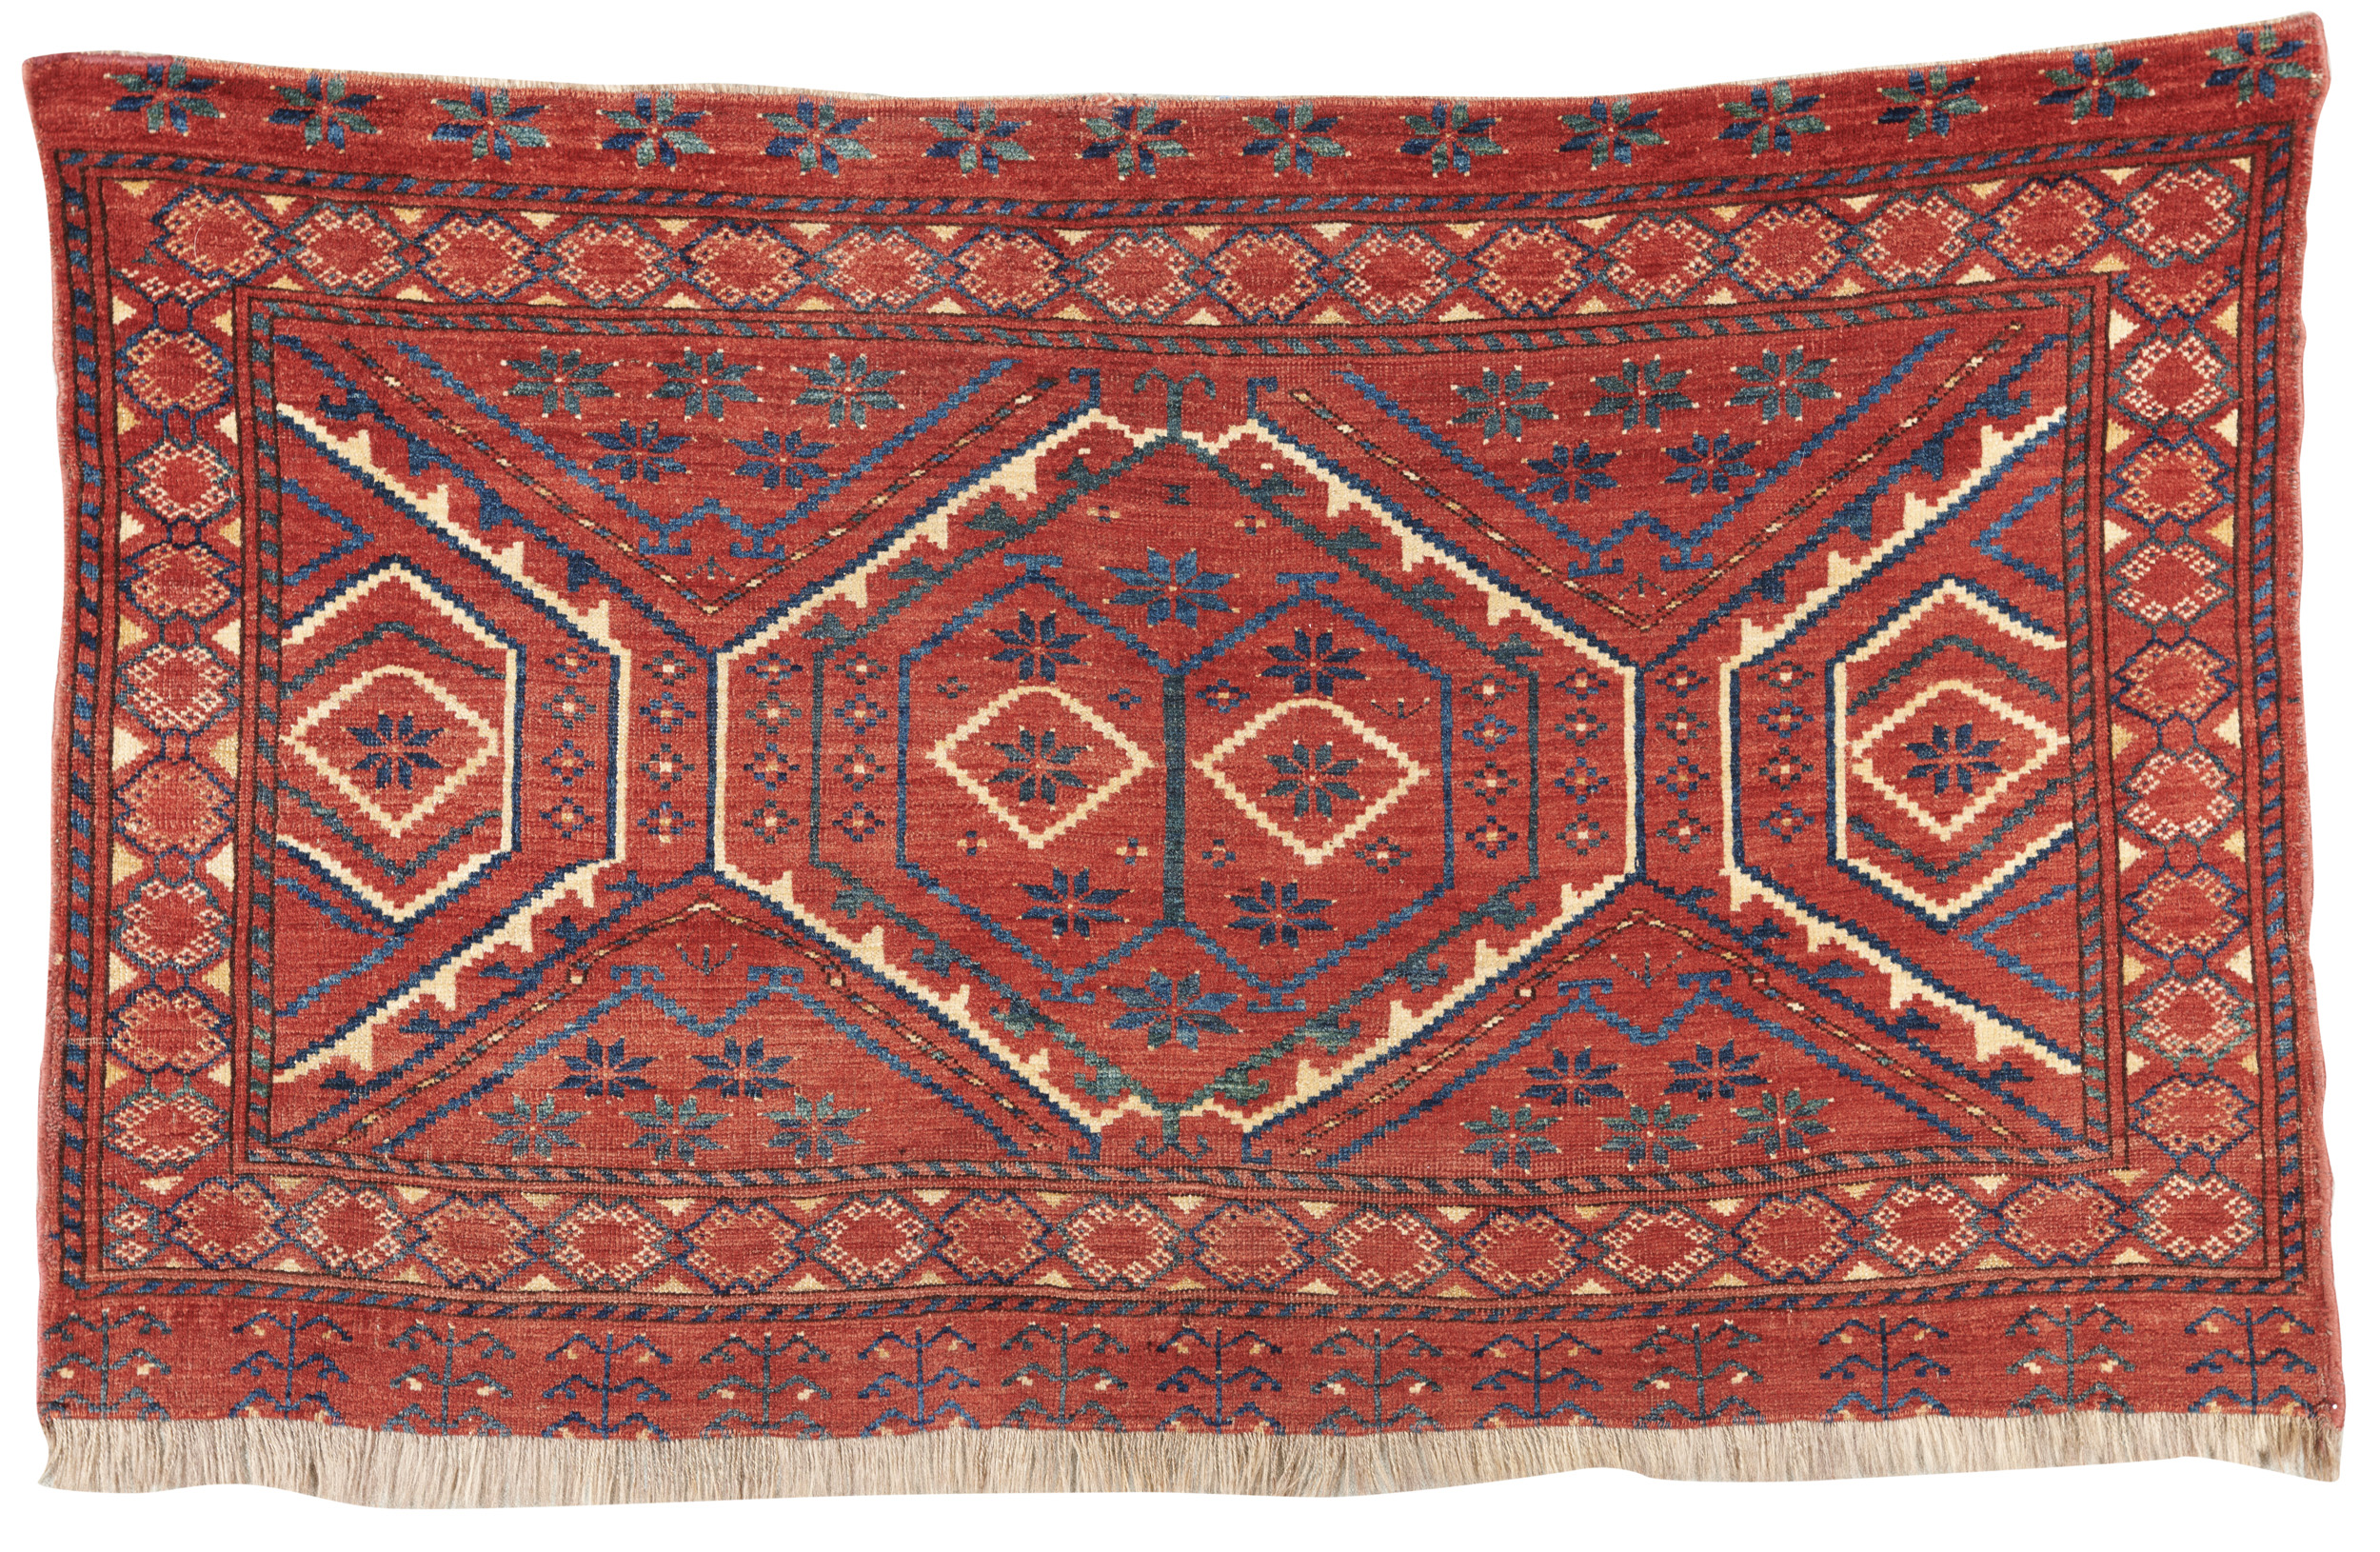 The Fine Rugs and Carpets Auction